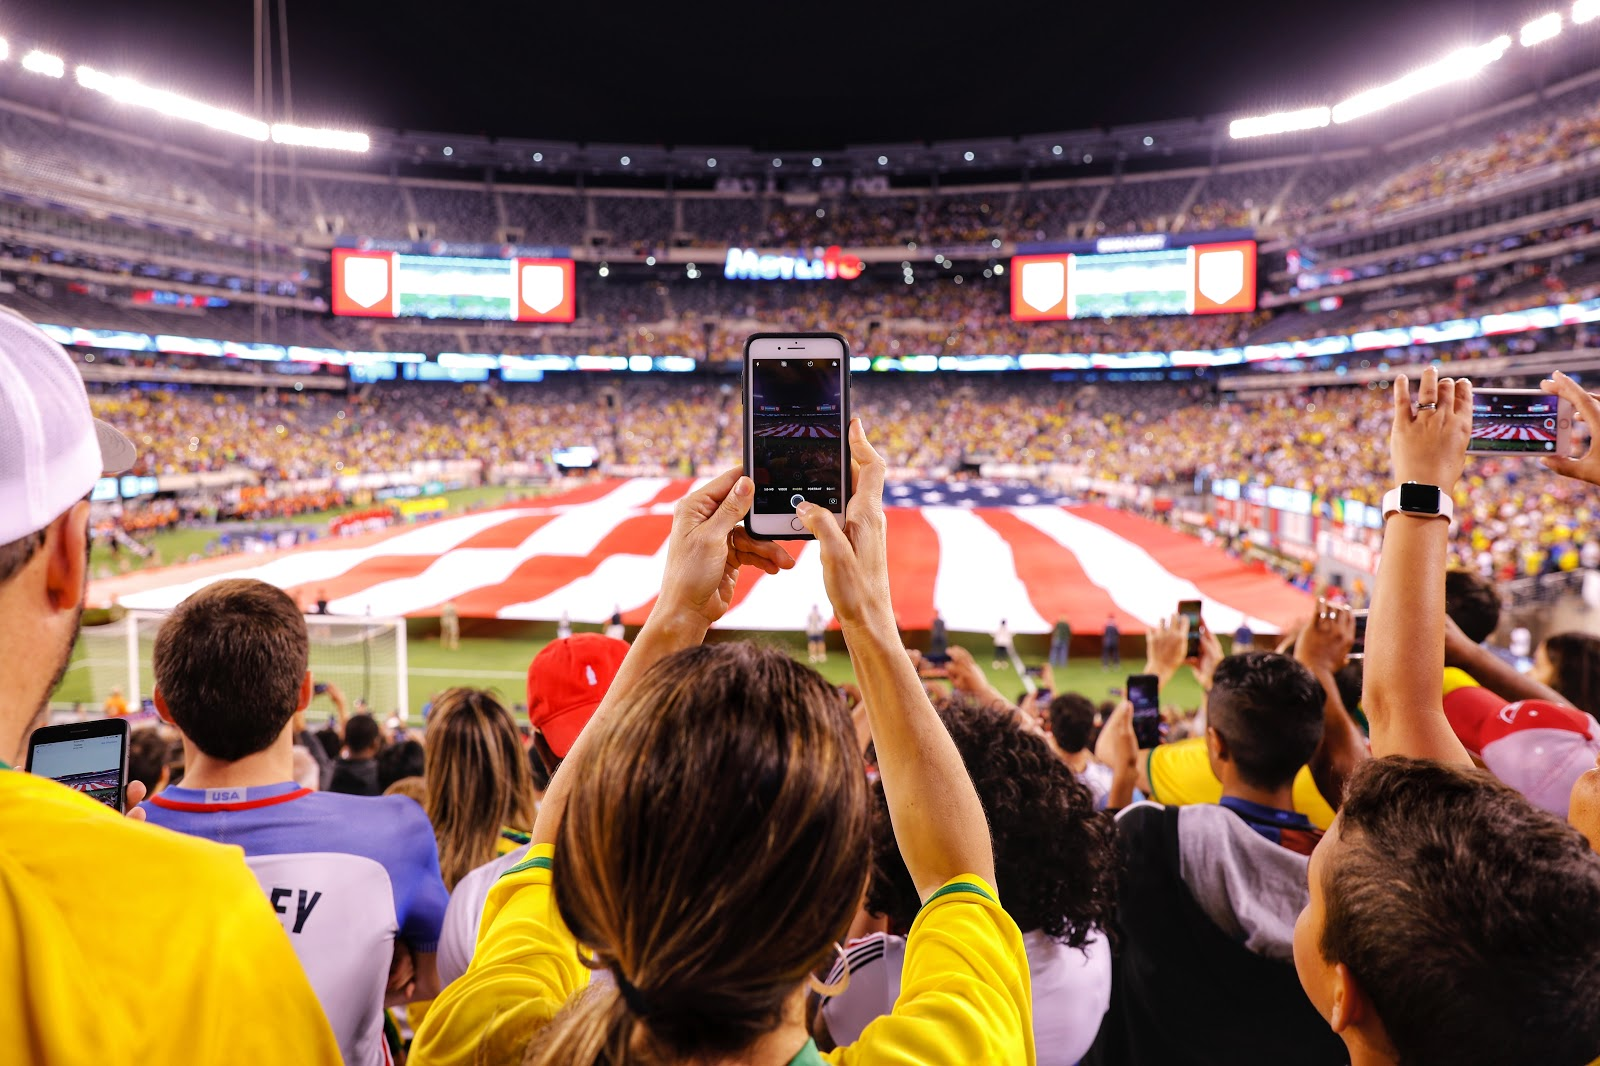 people in a crowd at a sporting event hold up their cell phones as a United States flag is held up over the field